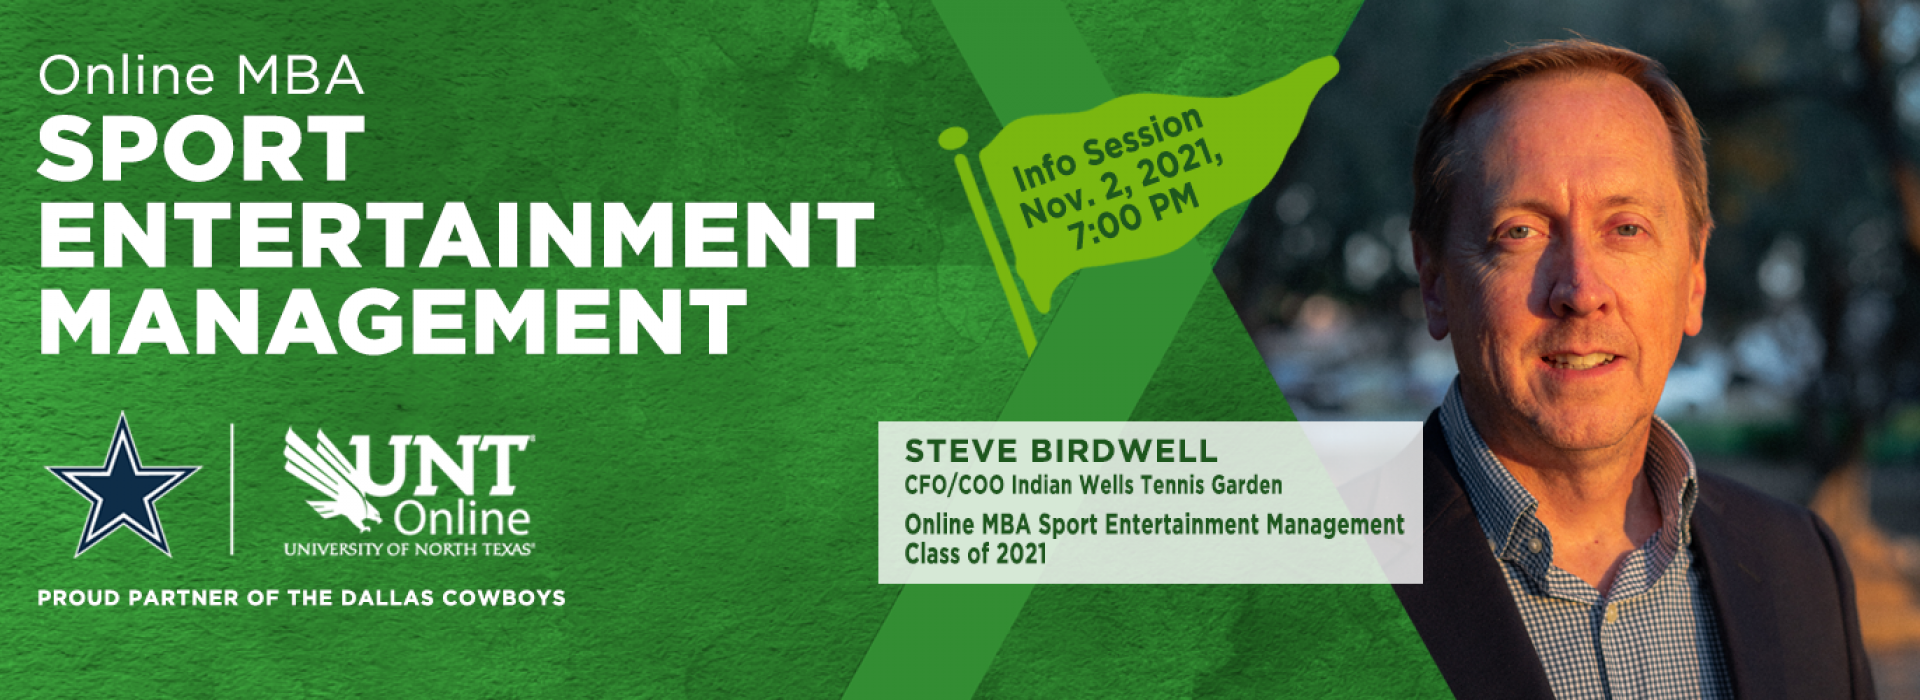 MBA in Sport Entertainment Management - info session november 2, 7pm